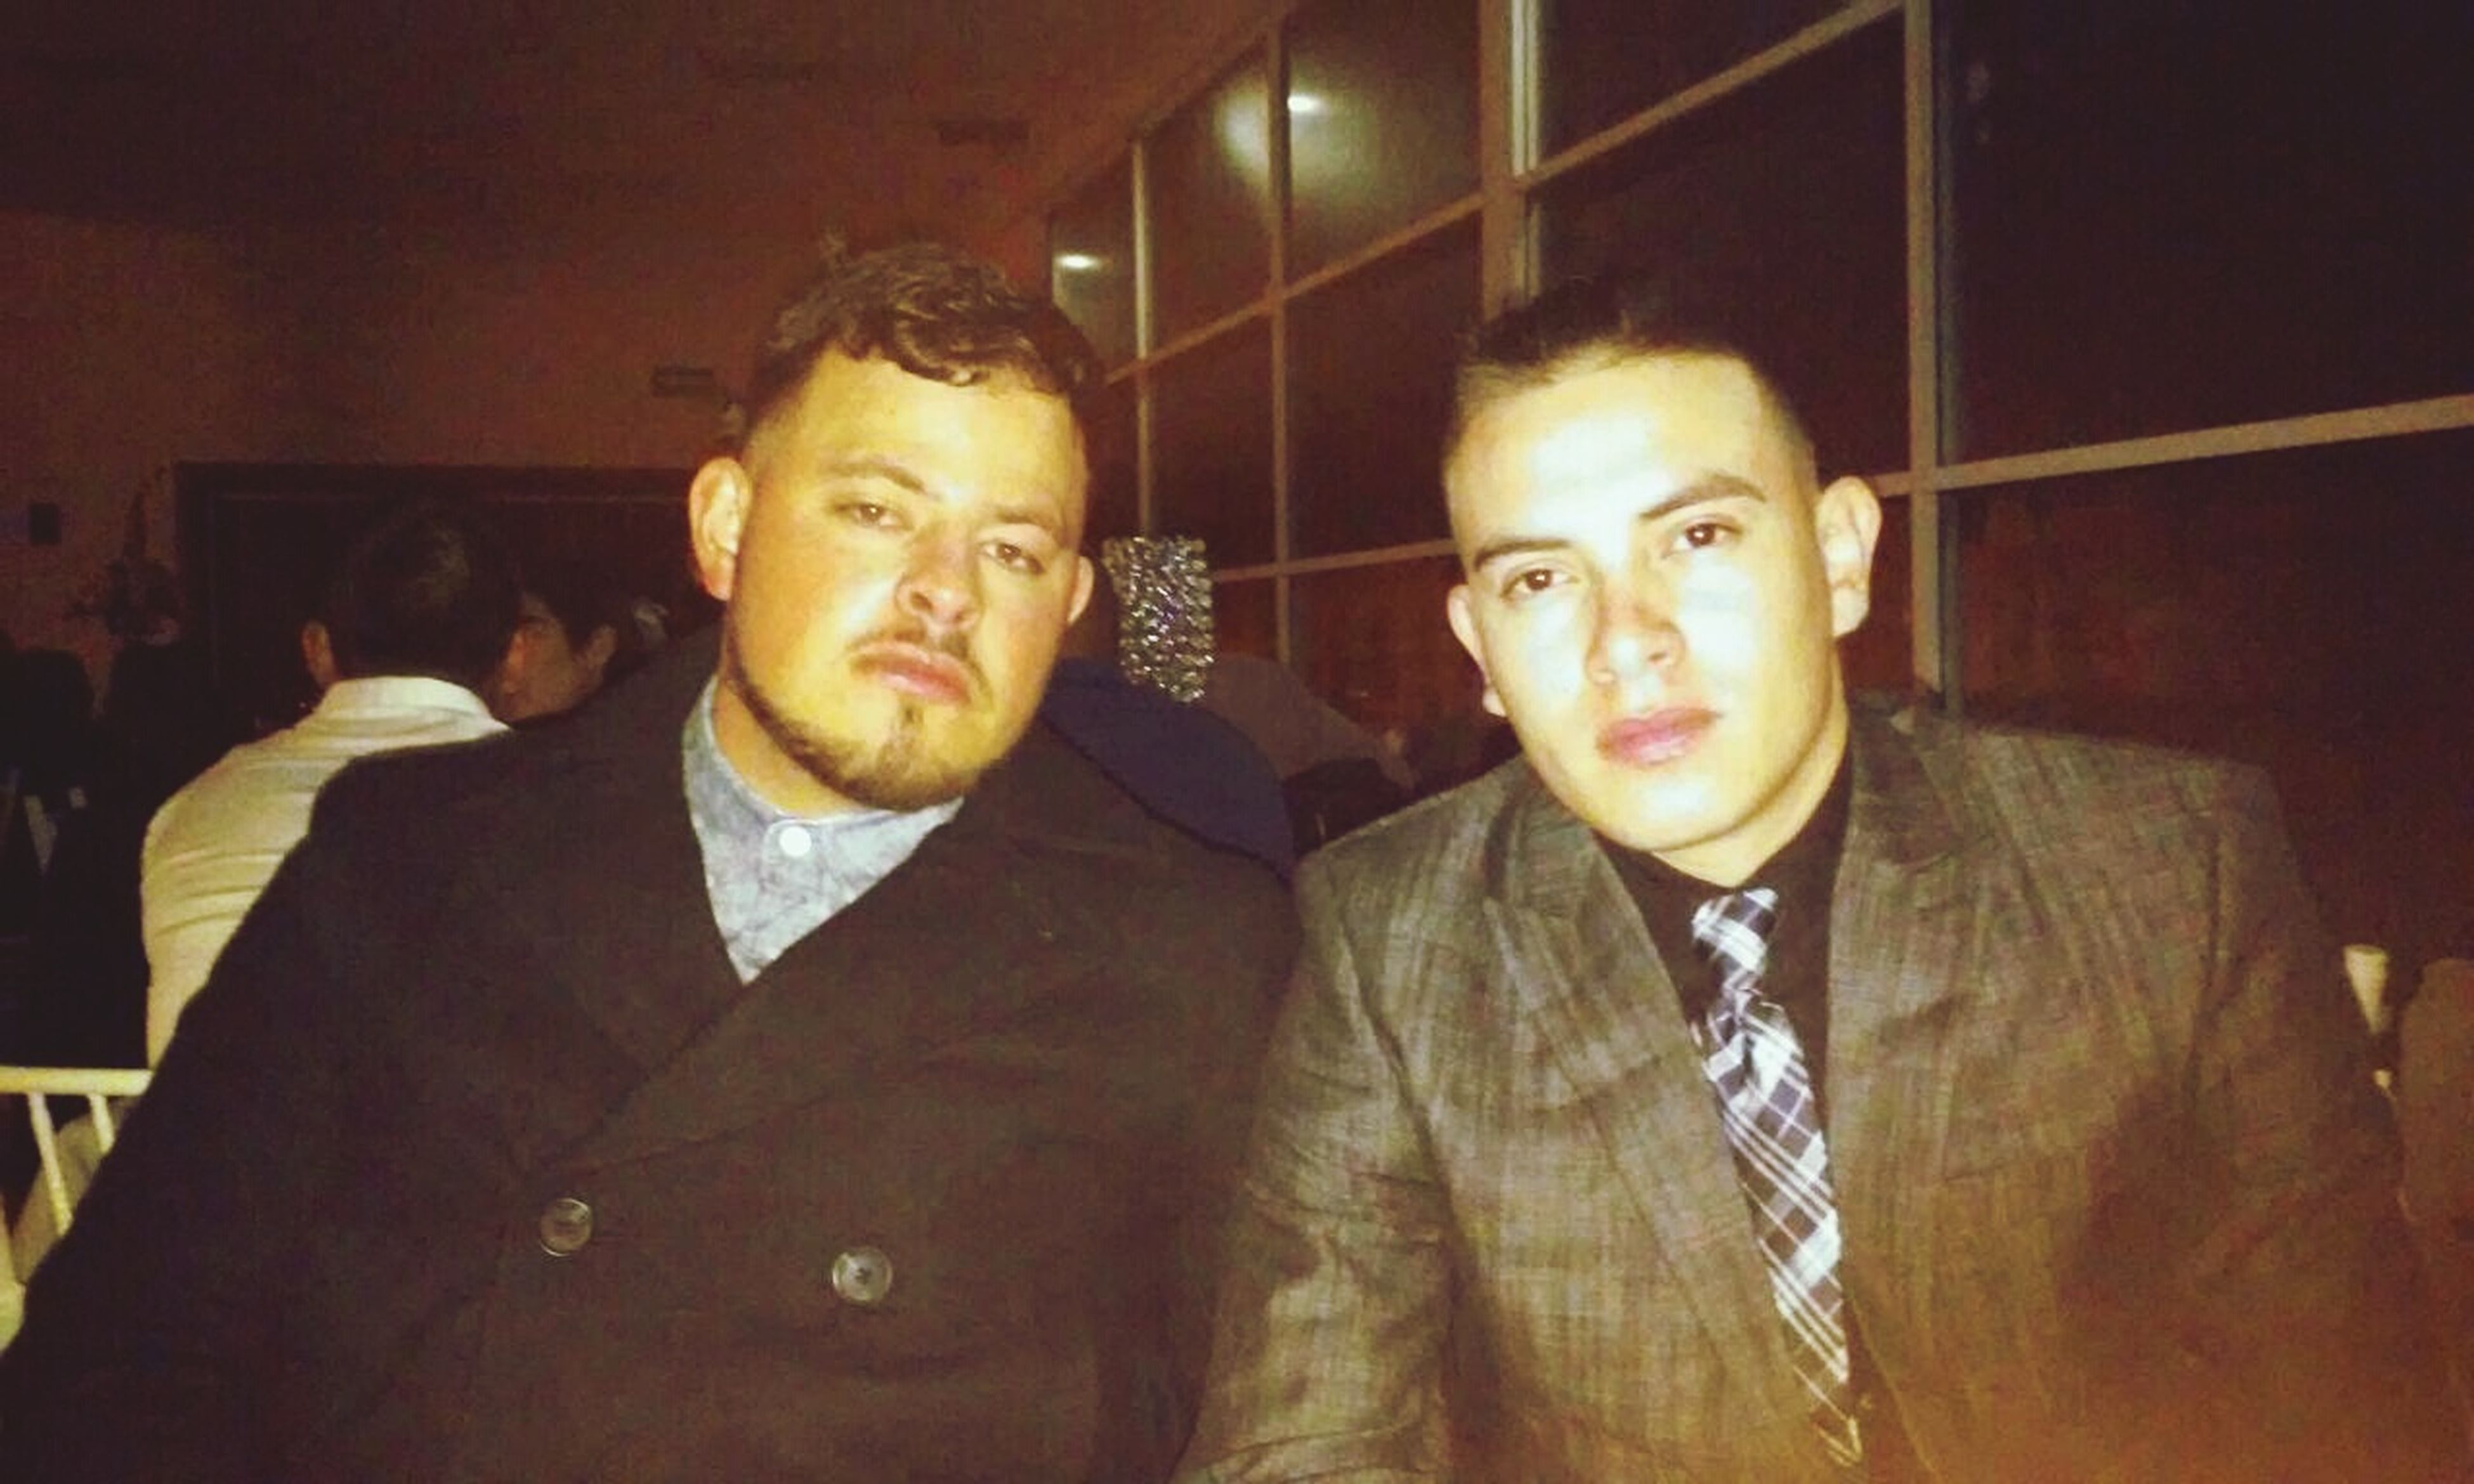 two people, indoors, businessman, lifestyles, real people, well-dressed, portrait, night, illuminated, togetherness, only men, adults only, people, adult